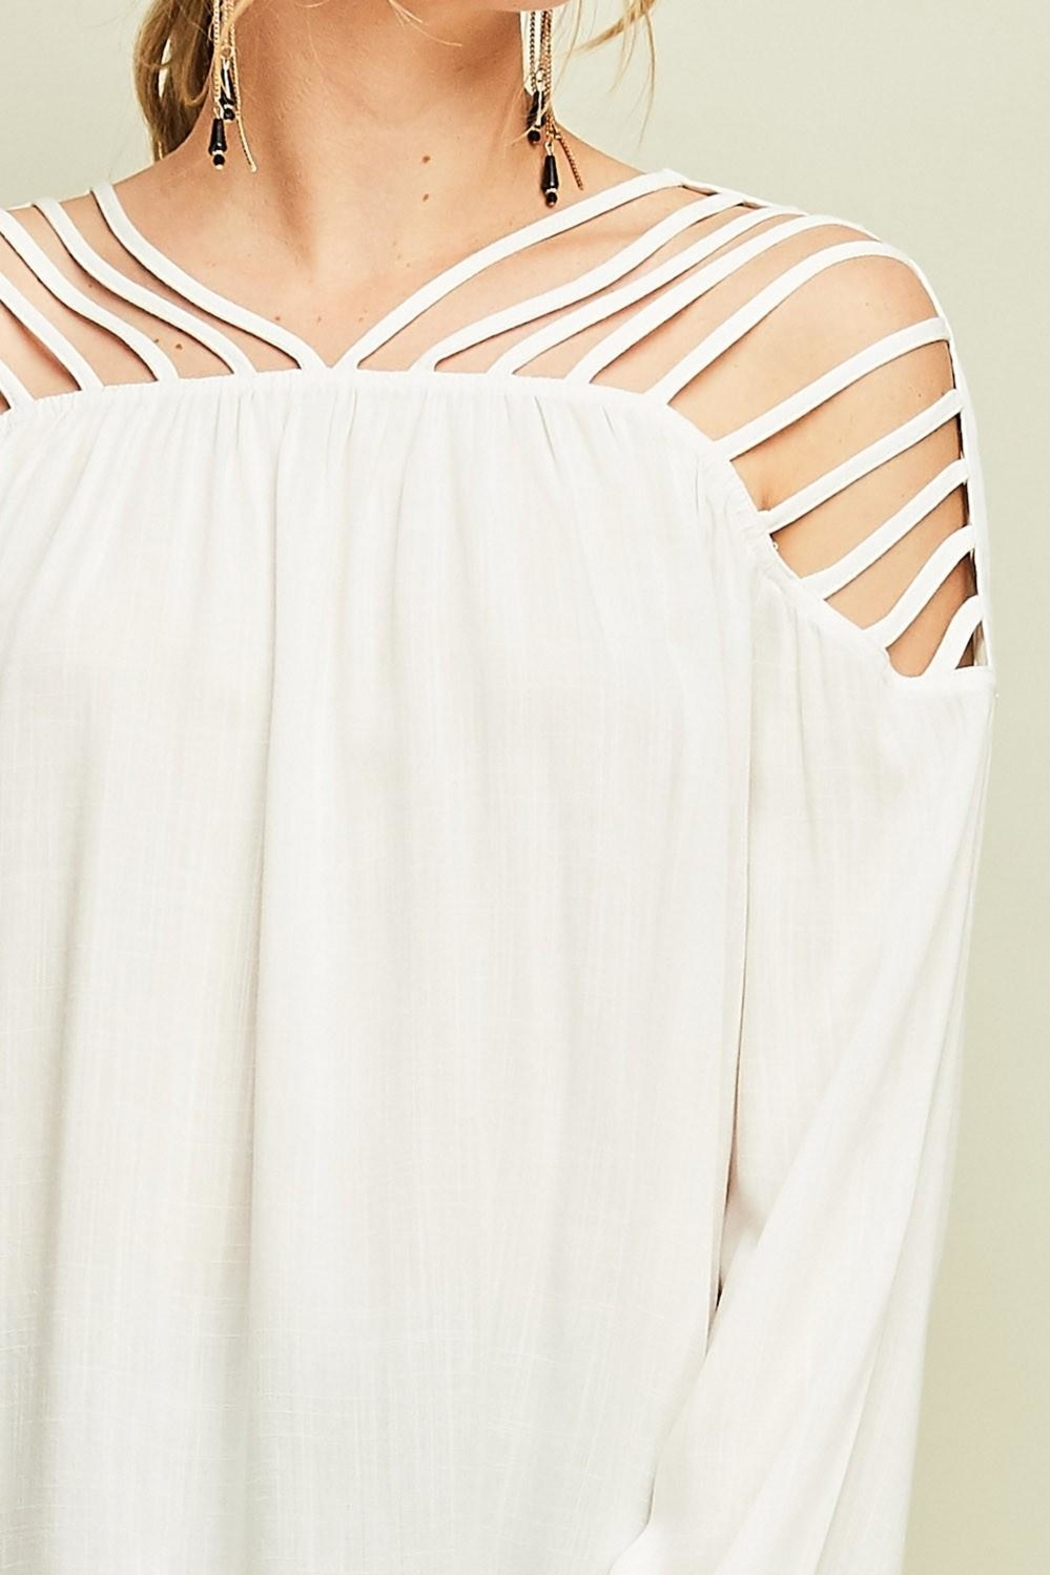 Entro Dressy Cutout Top - Back Cropped Image